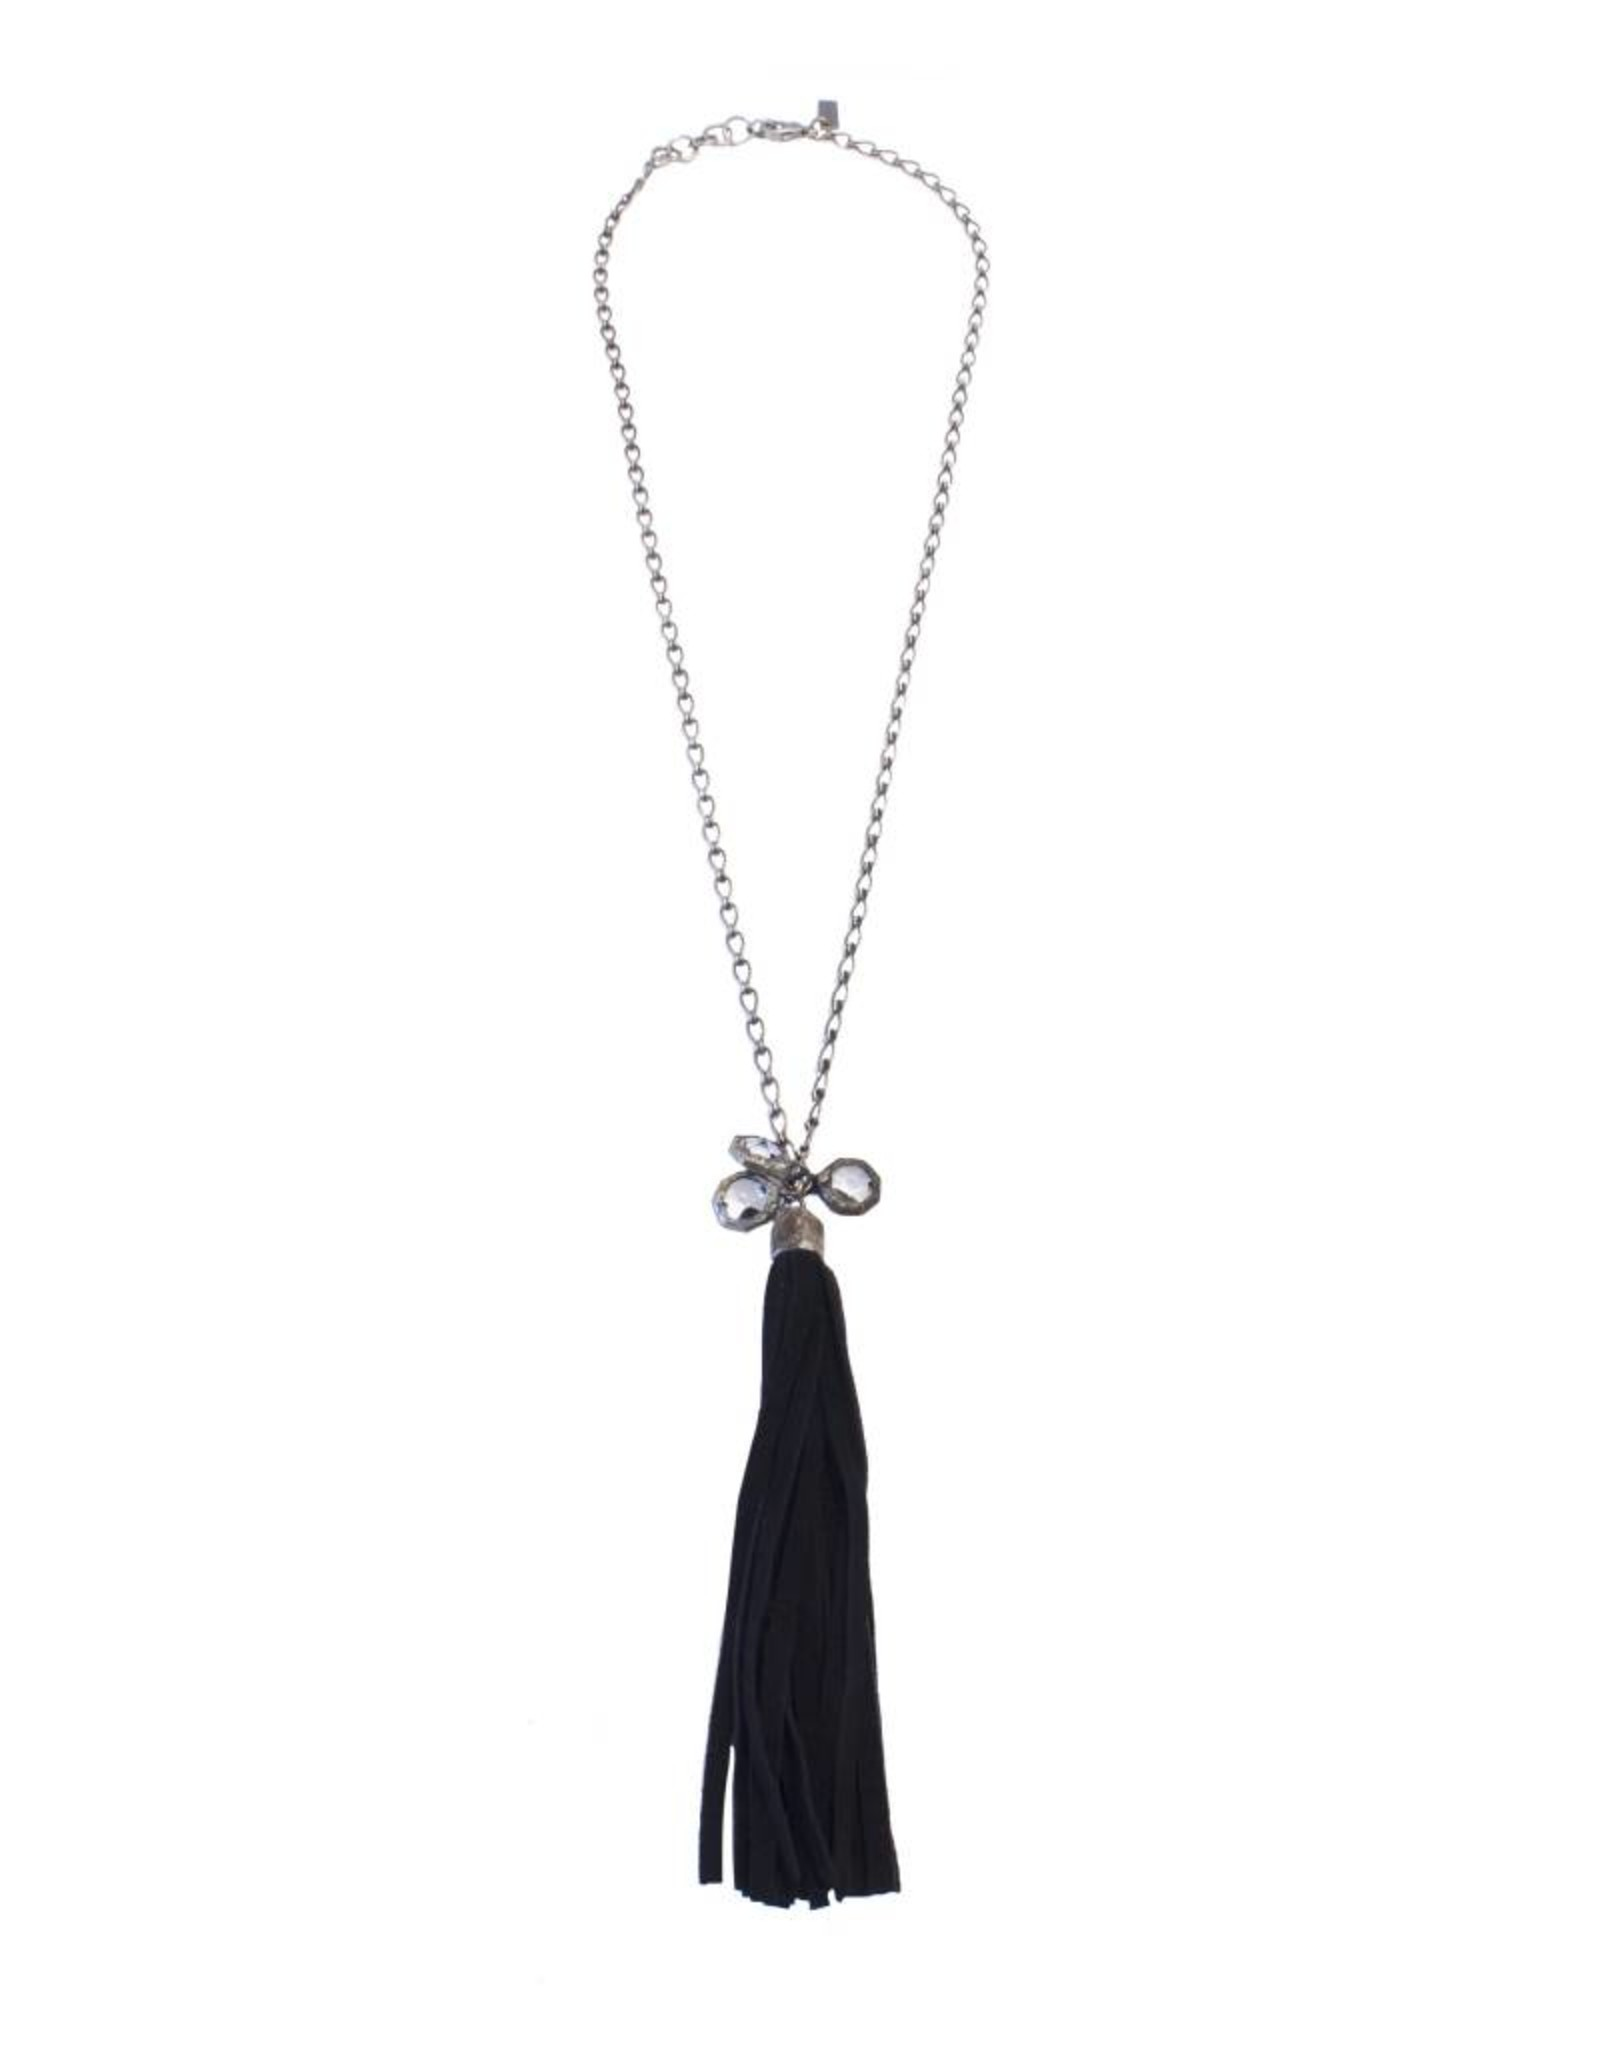 Jamie Dietrich 3 Dots of Crystal Long Necklace with Black Suede Tassel